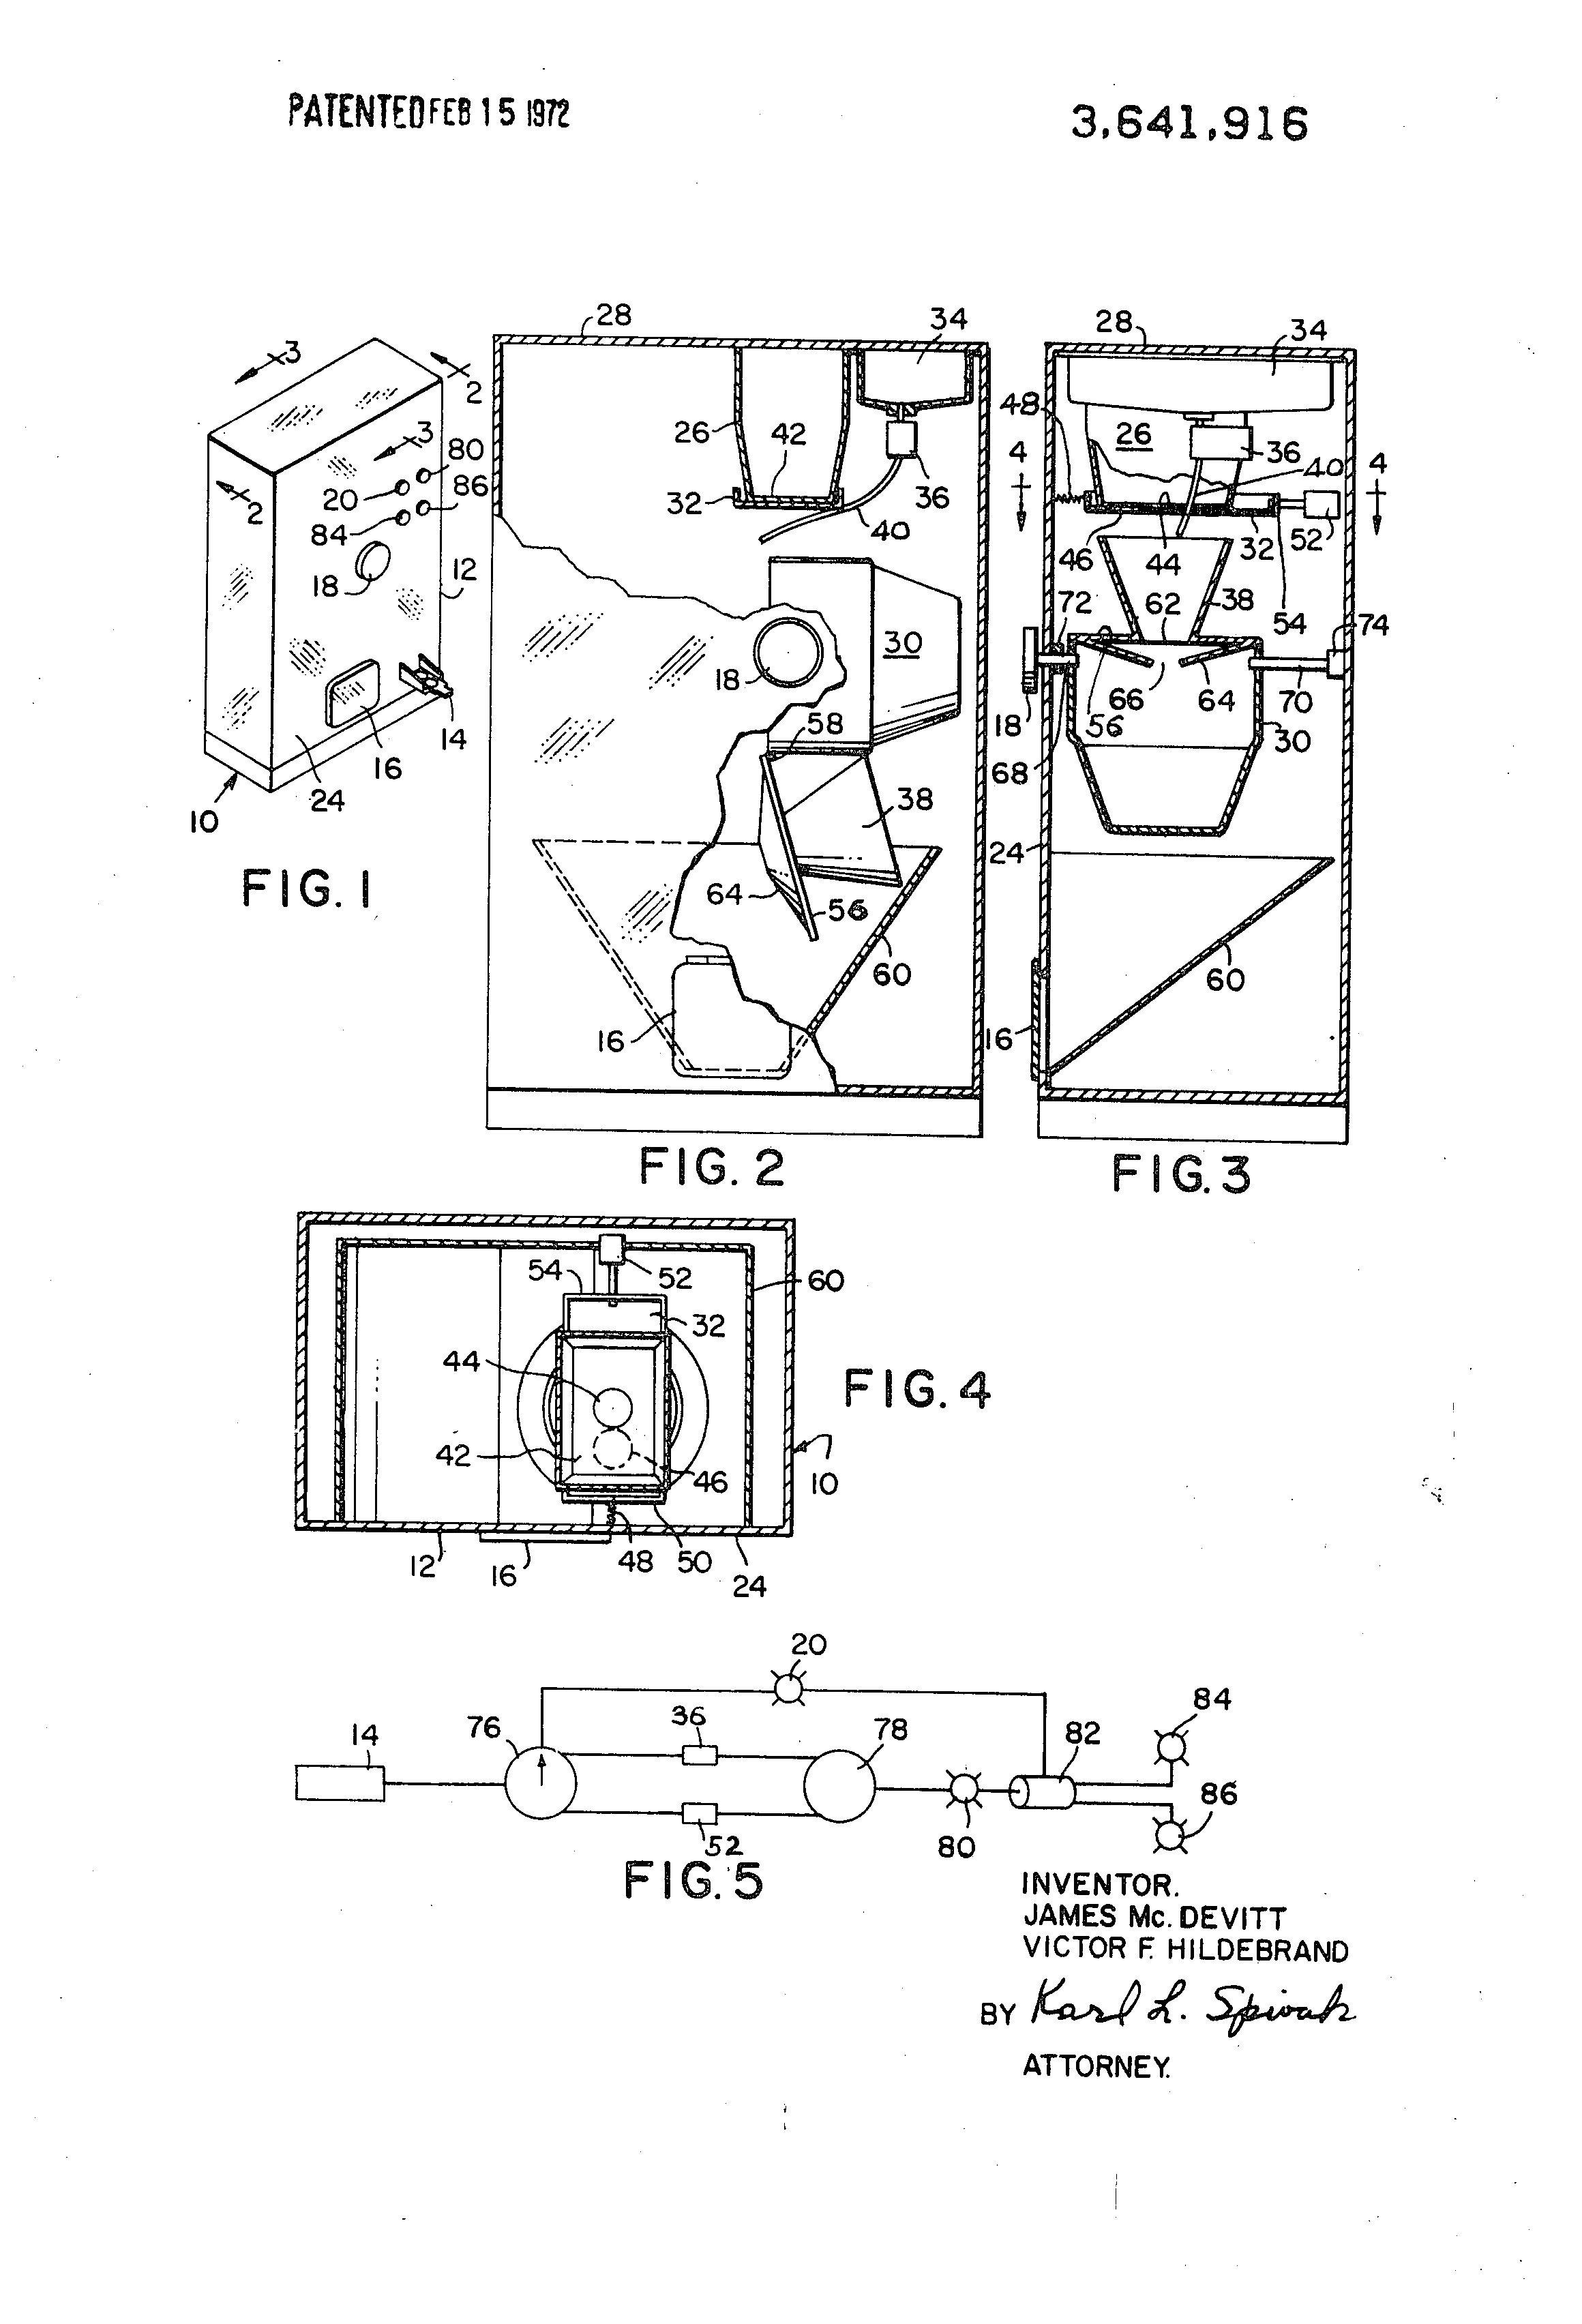 roosevelt popper popcorn machine wiring diagram patent us3641916 - fresh popcorn vending machine - google ... ipso washing machine wiring diagram